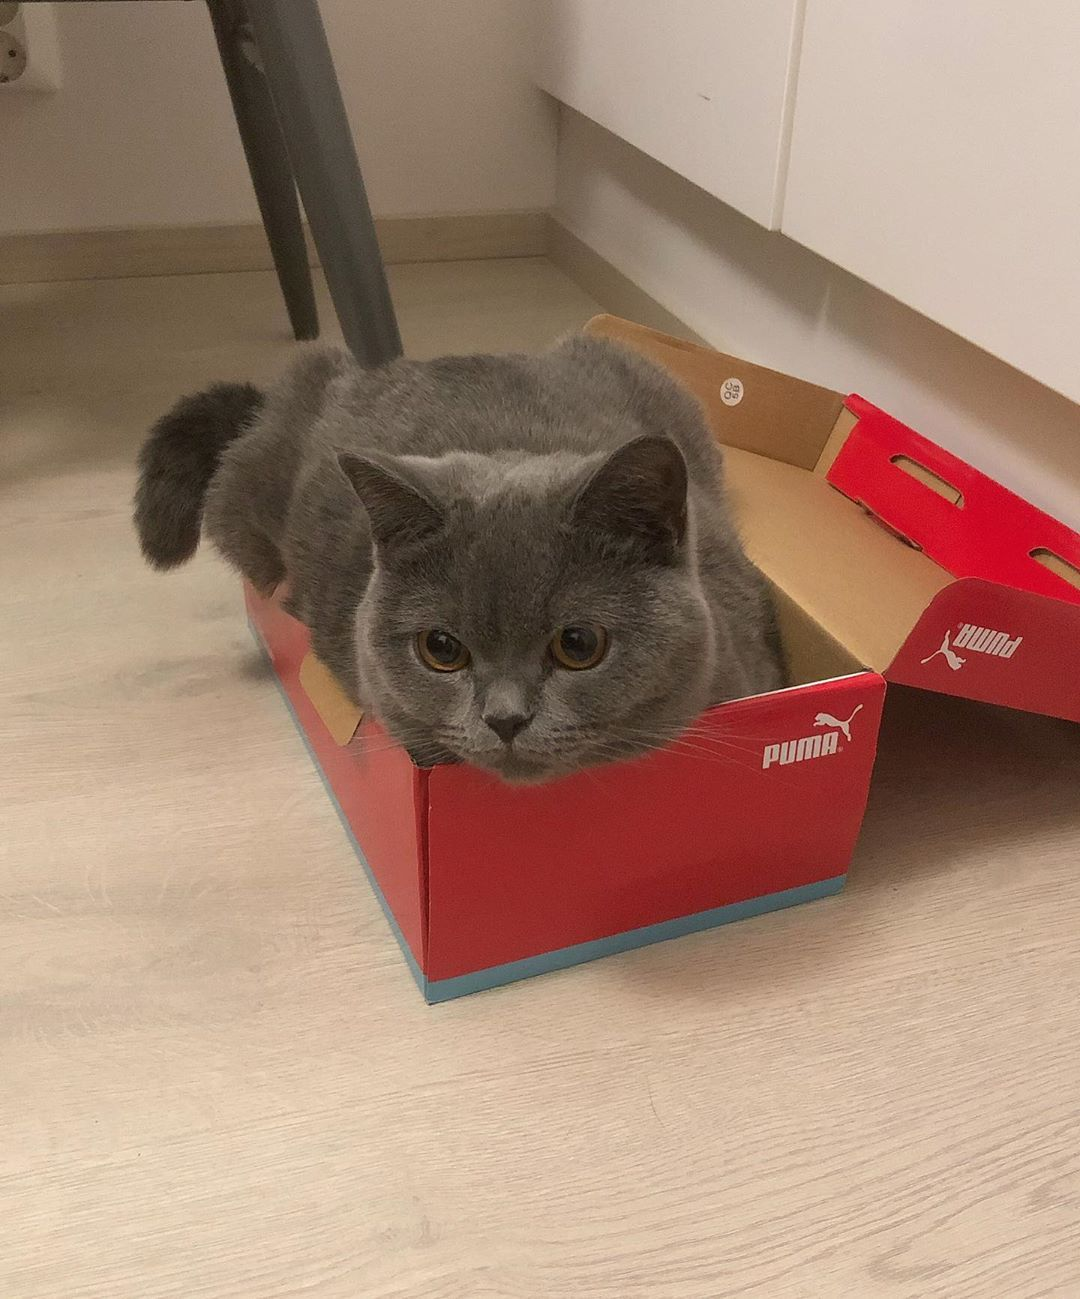 Nala Thinks That The Box Is Made For Her We Think The Box Is Too Small For Nala British Shorthair Kittens Cute Cats British Shorthair